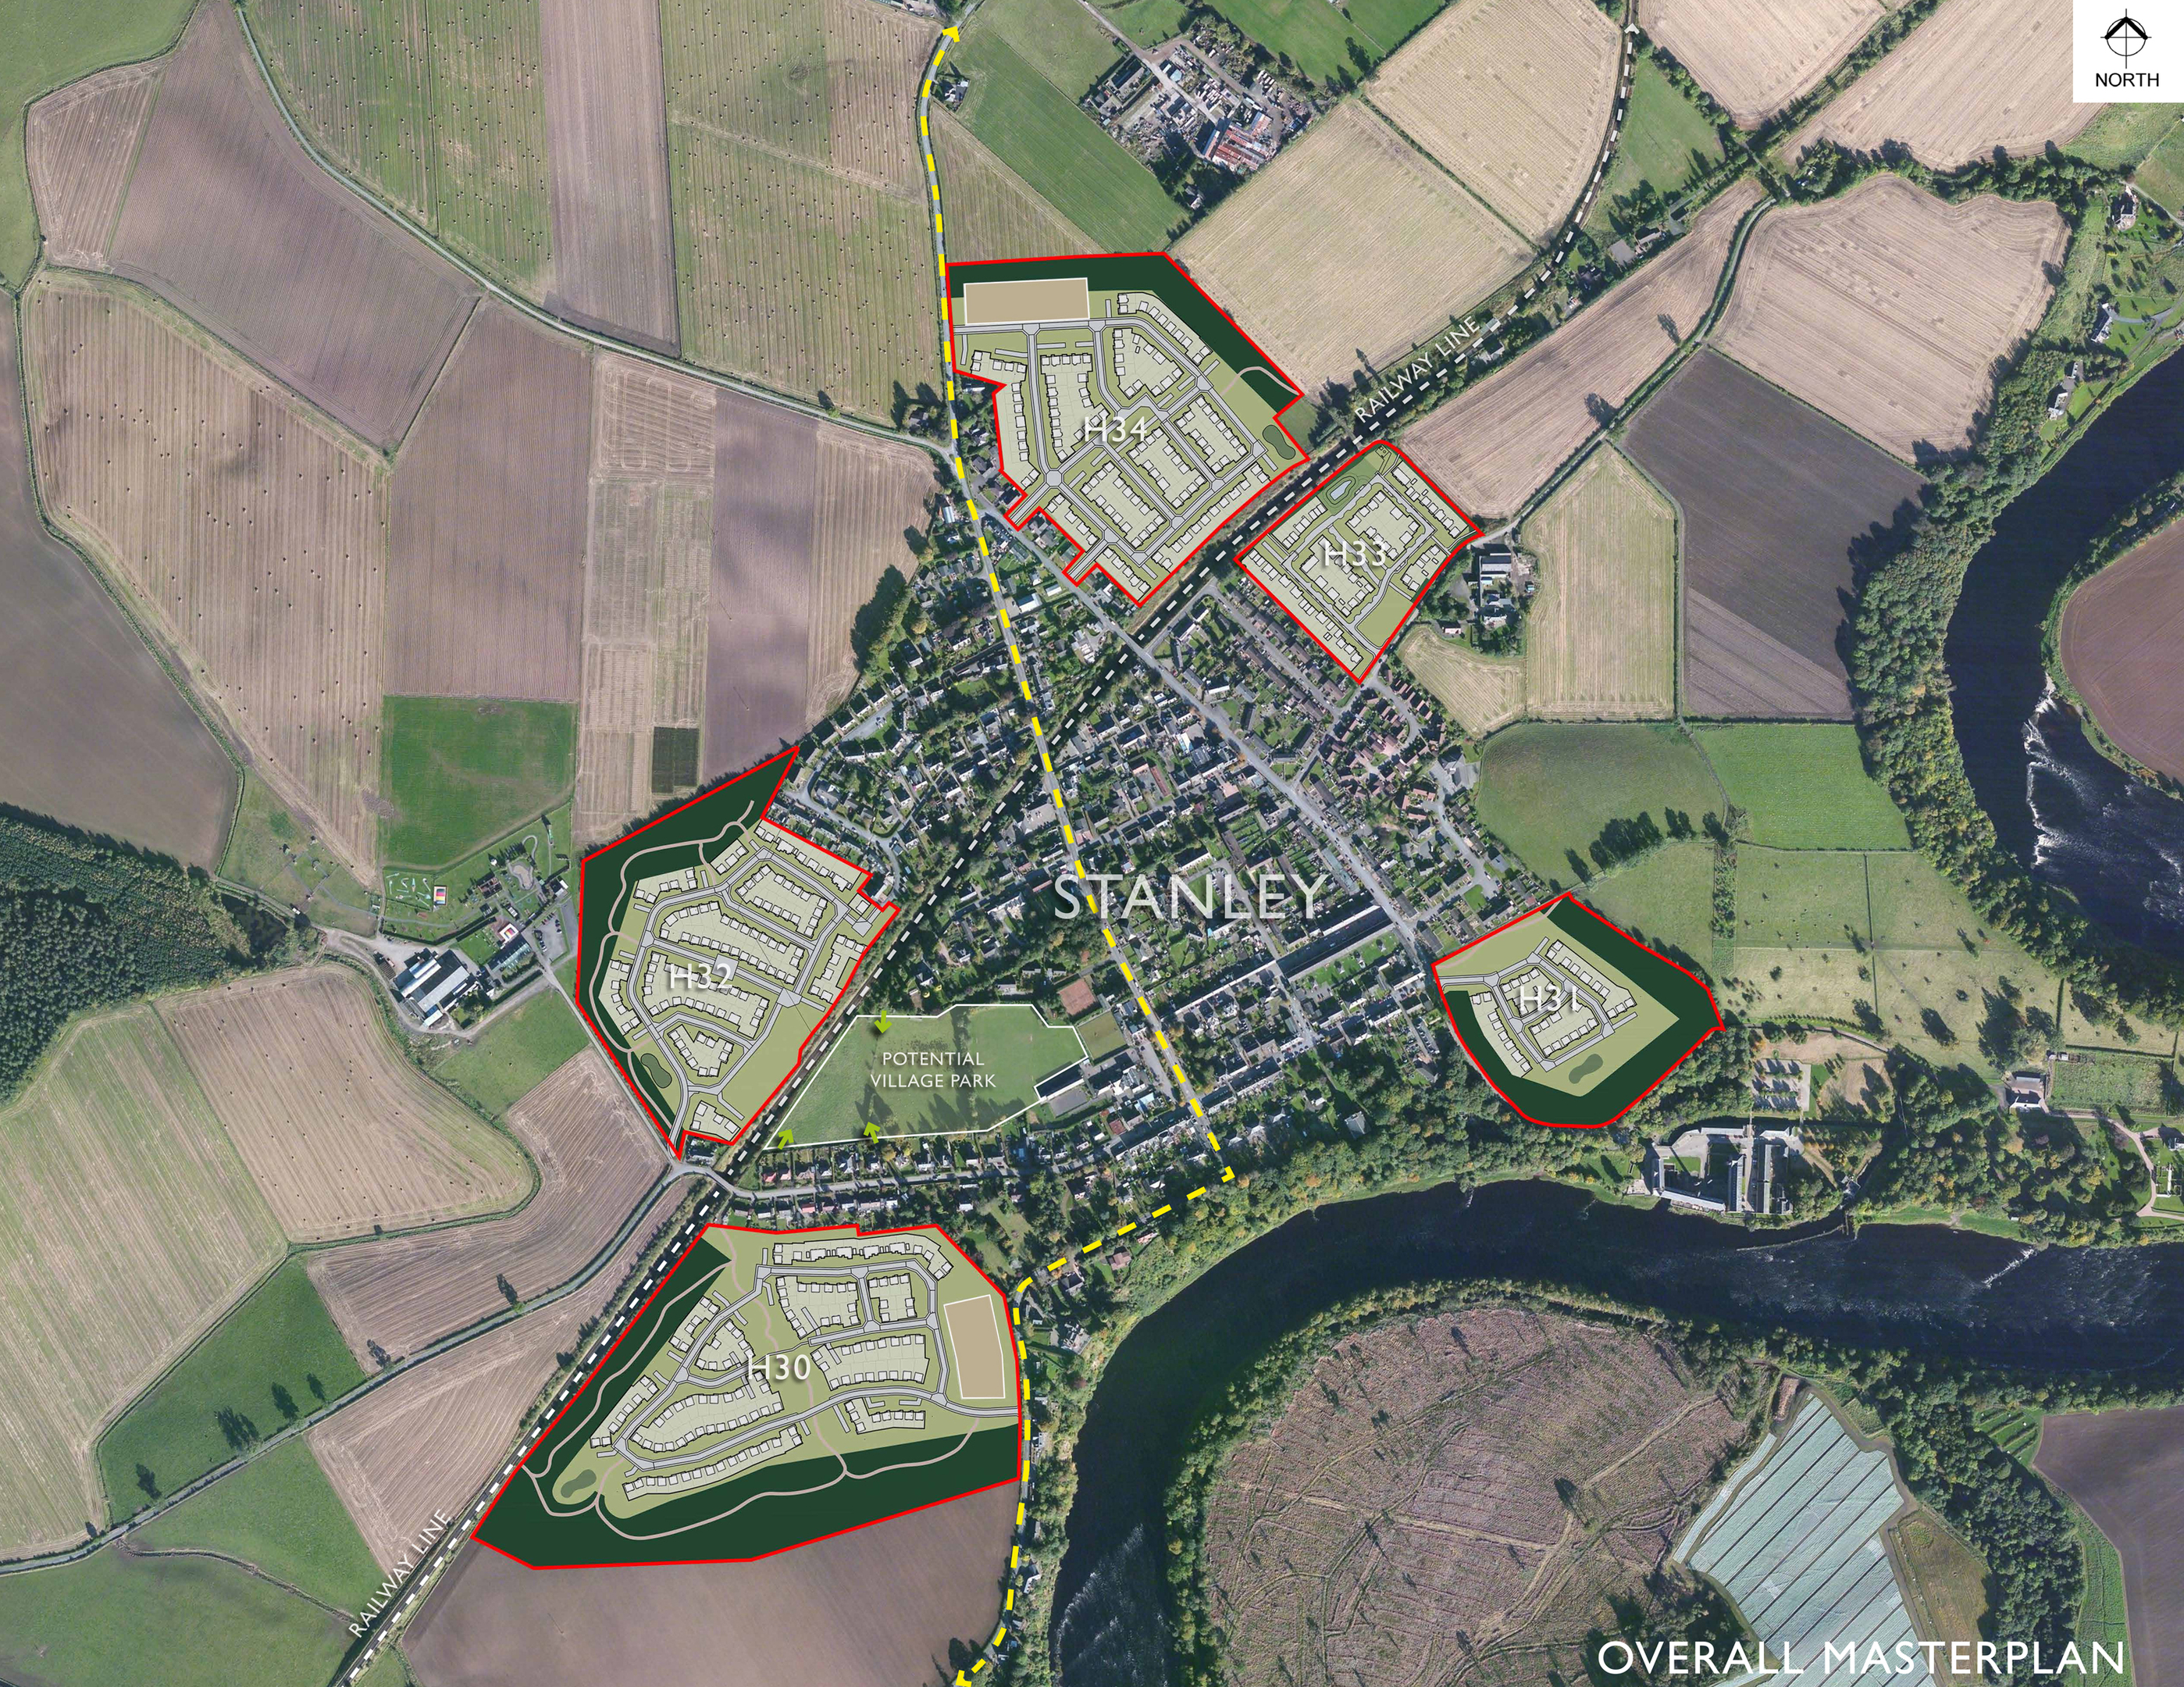 Muir Homes masterplan will see homes built on five sites - linked by public roads - around Stanley. Over 14 years, that could see the village's population double. Image: Muir Homes.